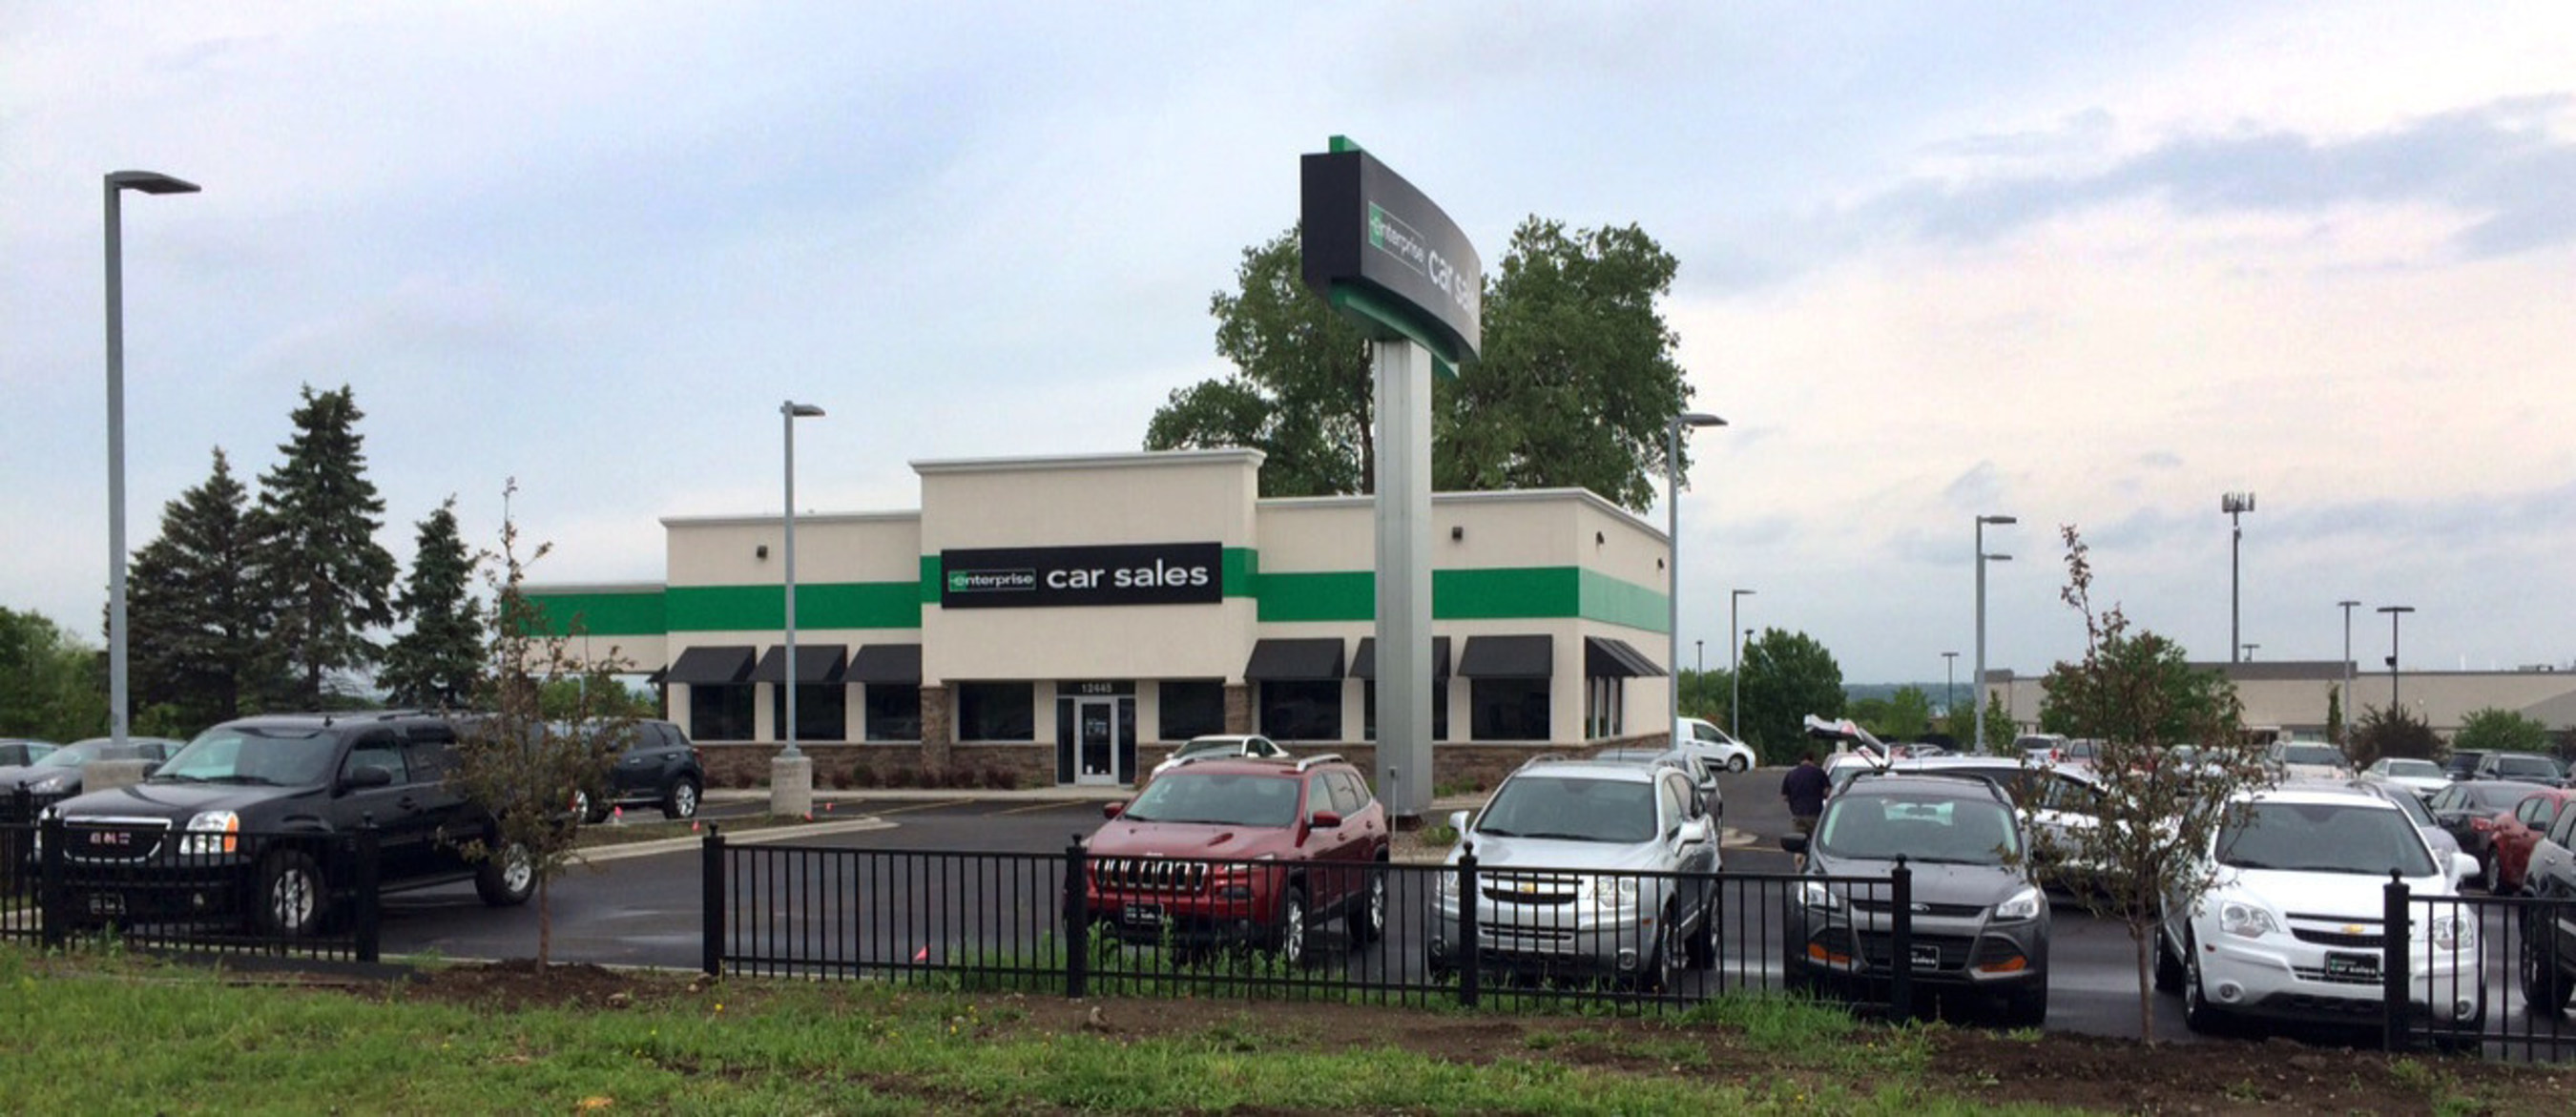 Most recently, Enterprise Car Sales expanded by opening a second location in Minneapolis earlier this spring. ...